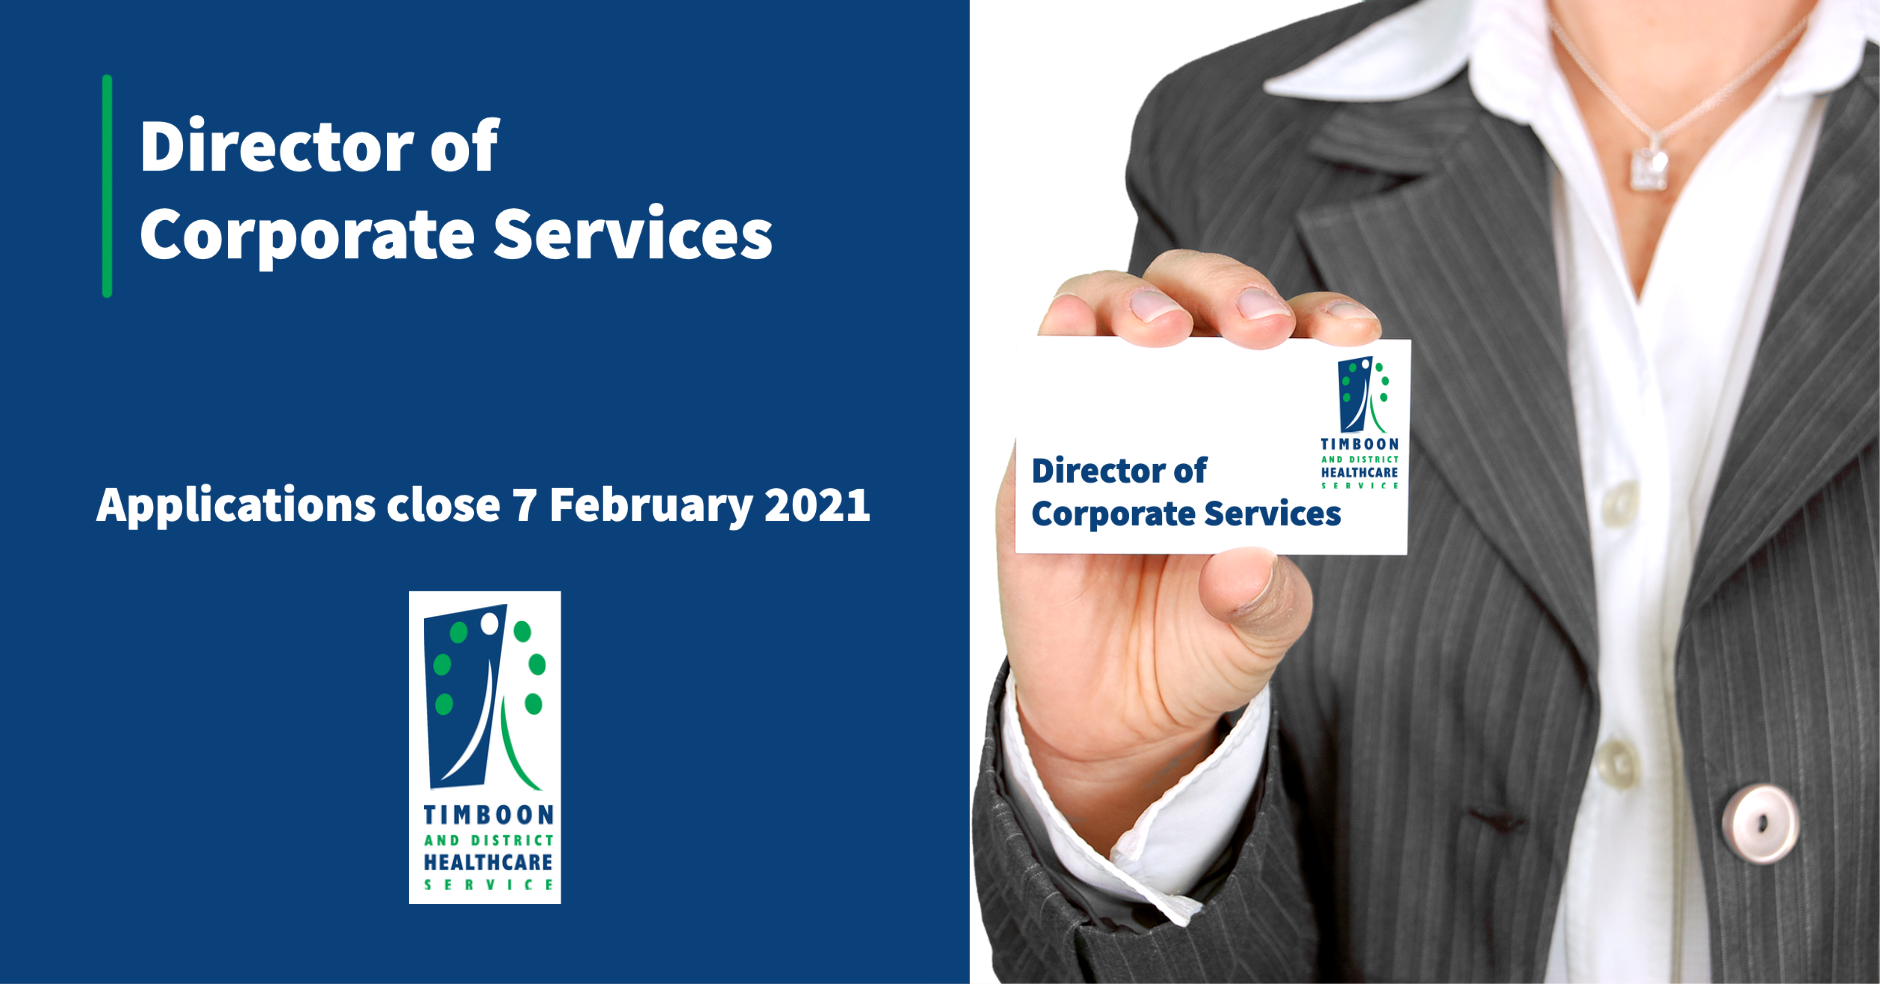 TDHS Director Role